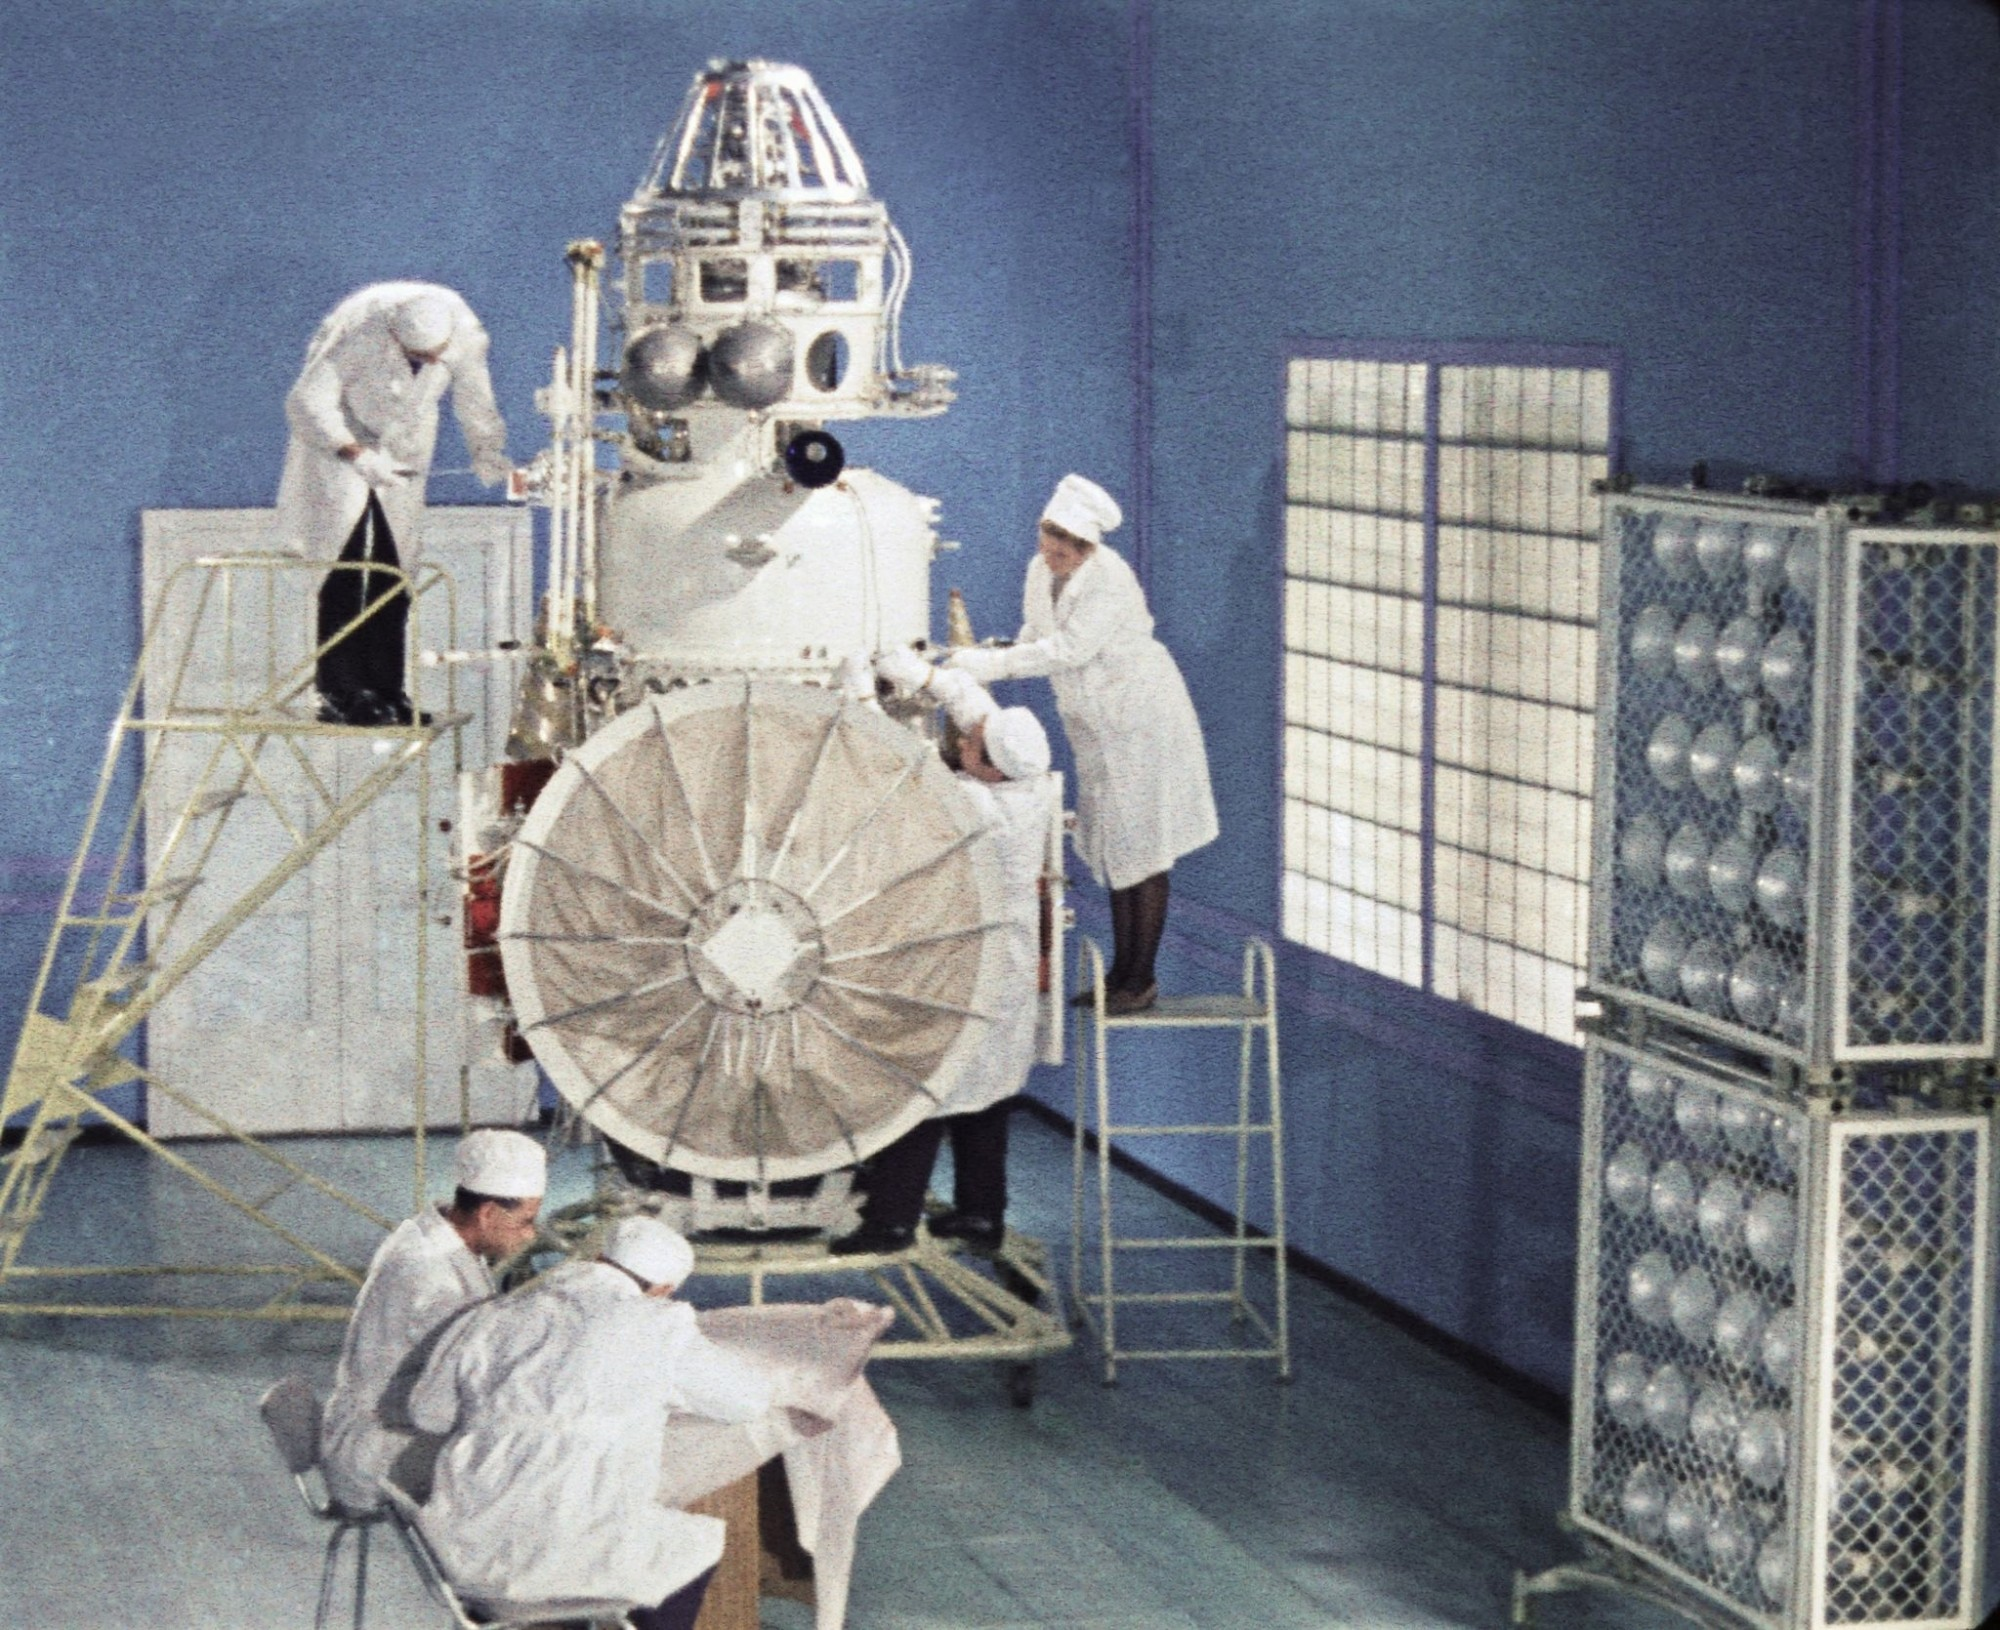 Soviet space probe venera 5 or 6 being prepared for it's launch in january 1969